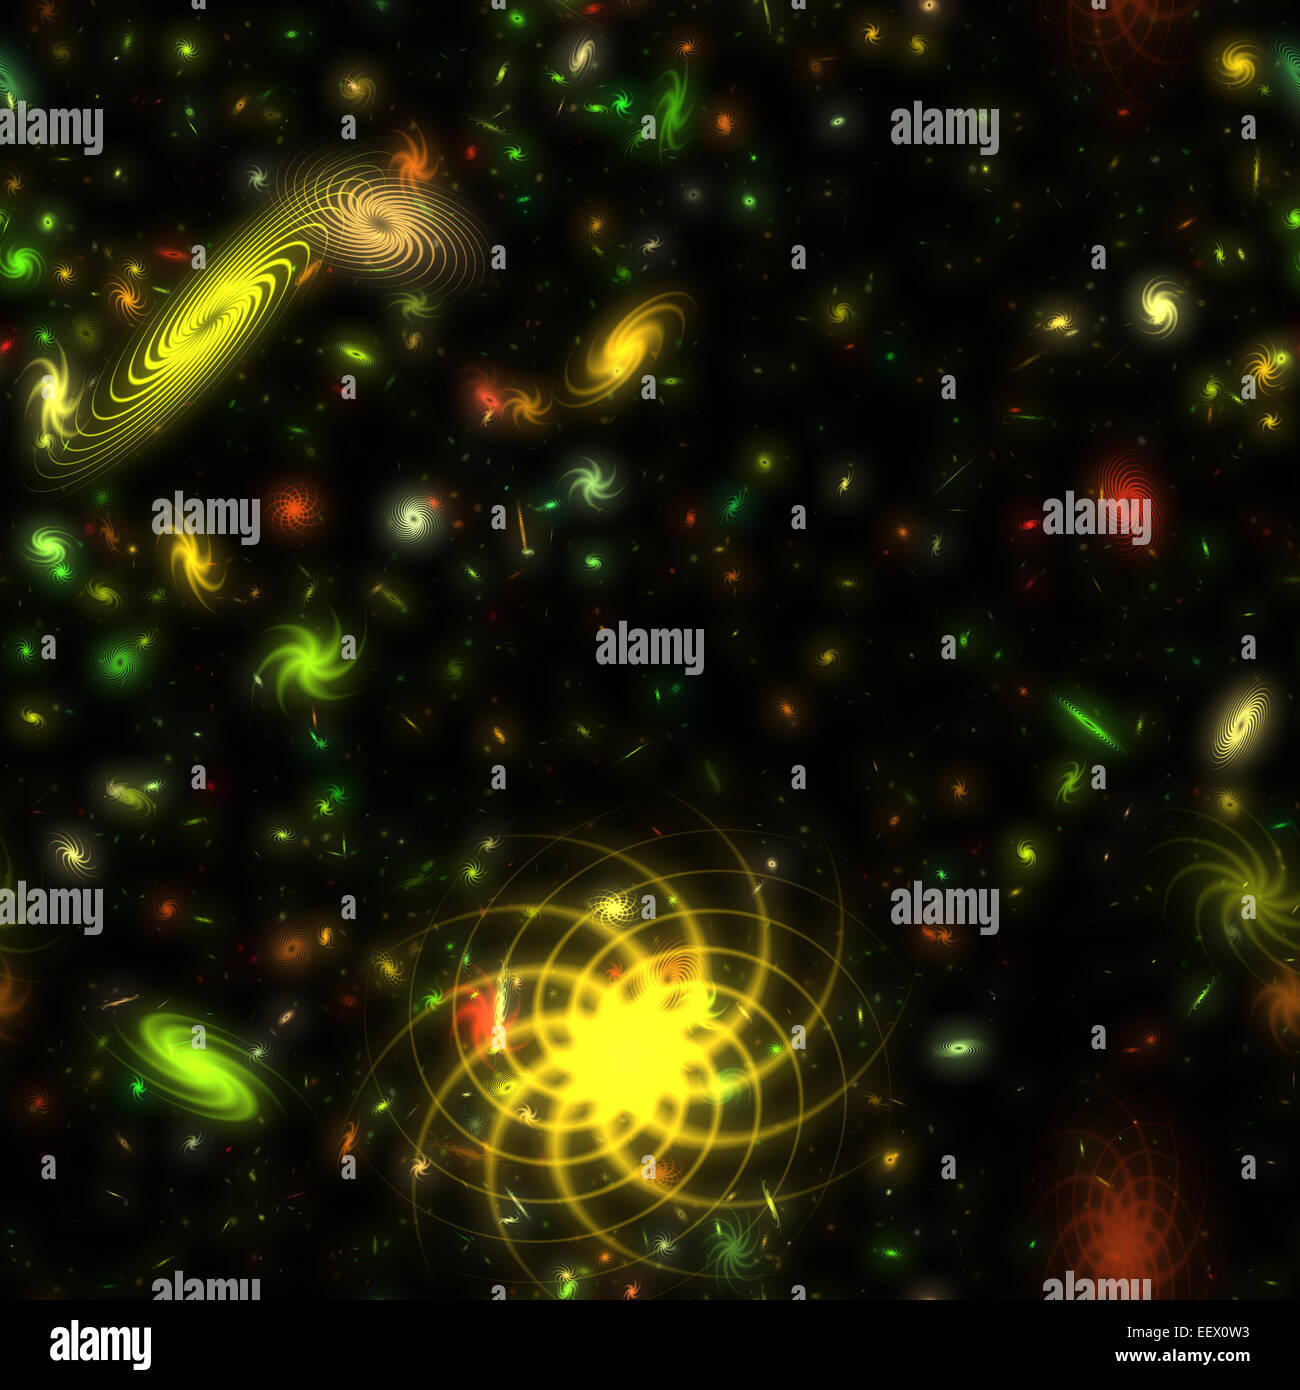 Colorful galaxies and celestial bodies scattered in space - Stock Image